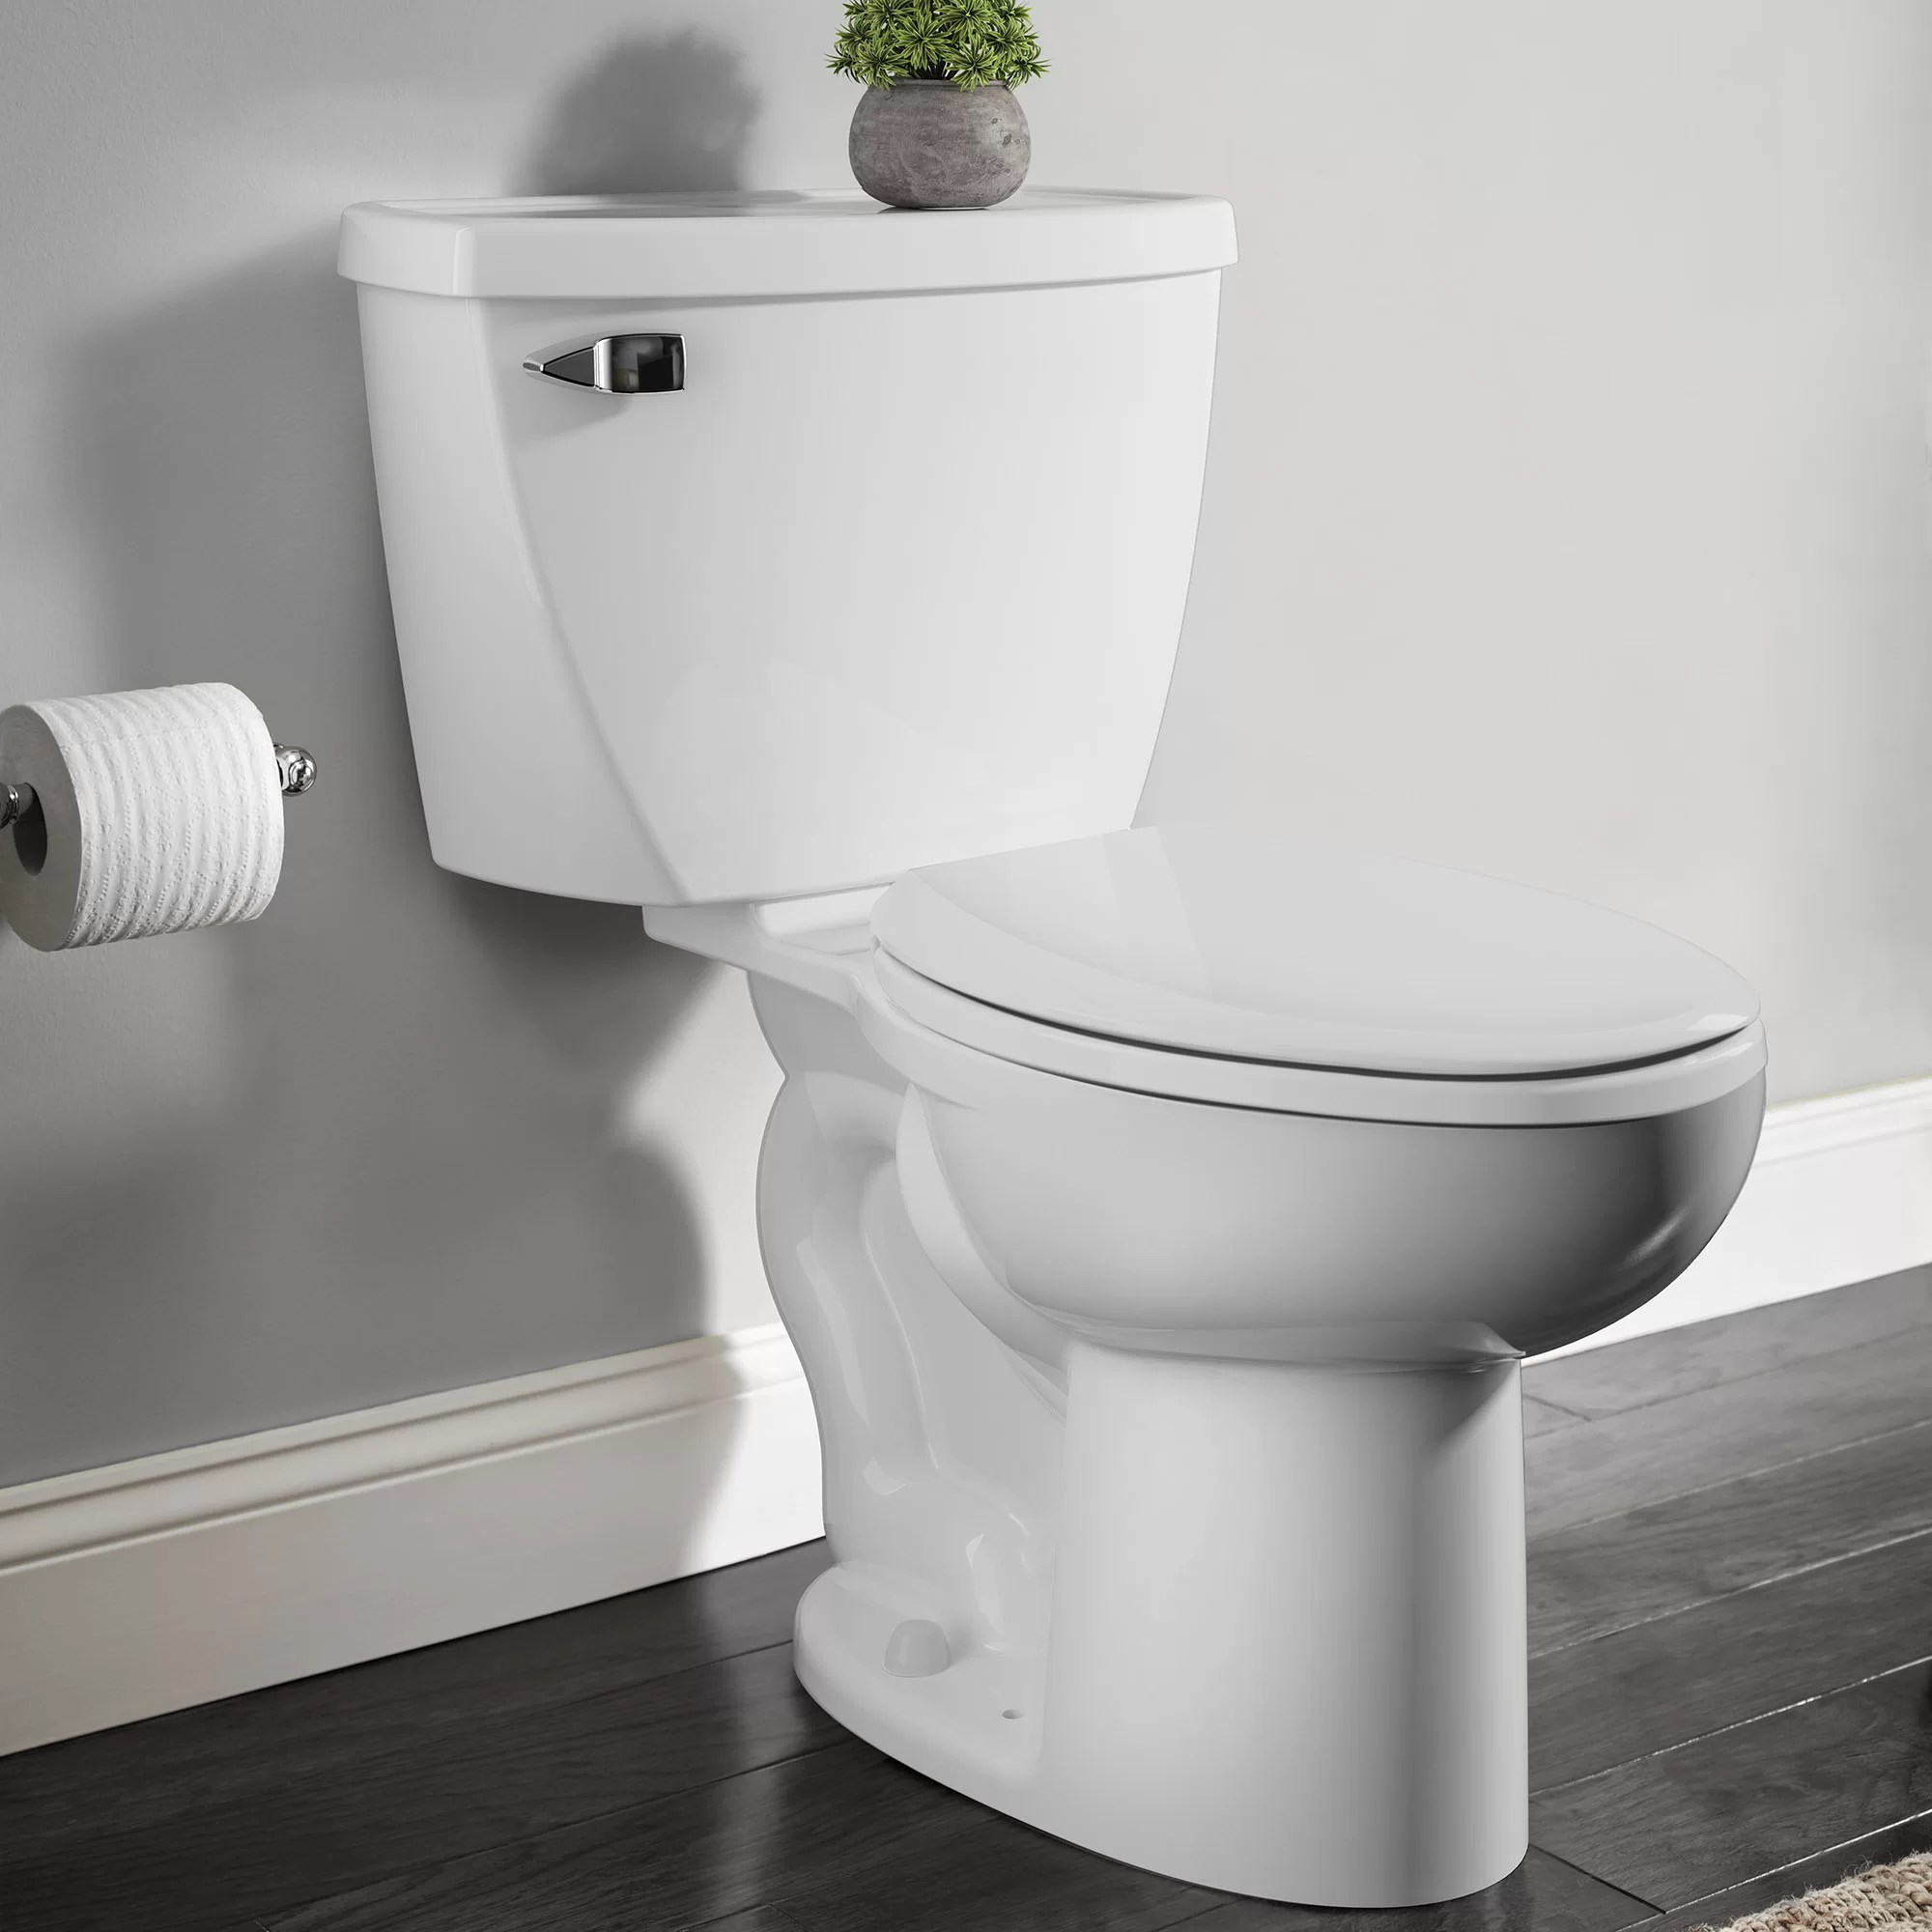 American Standard Cadet 1 6 Gpf Elongated Two Piece Toilet Seat Not Included Reviews Wayfair